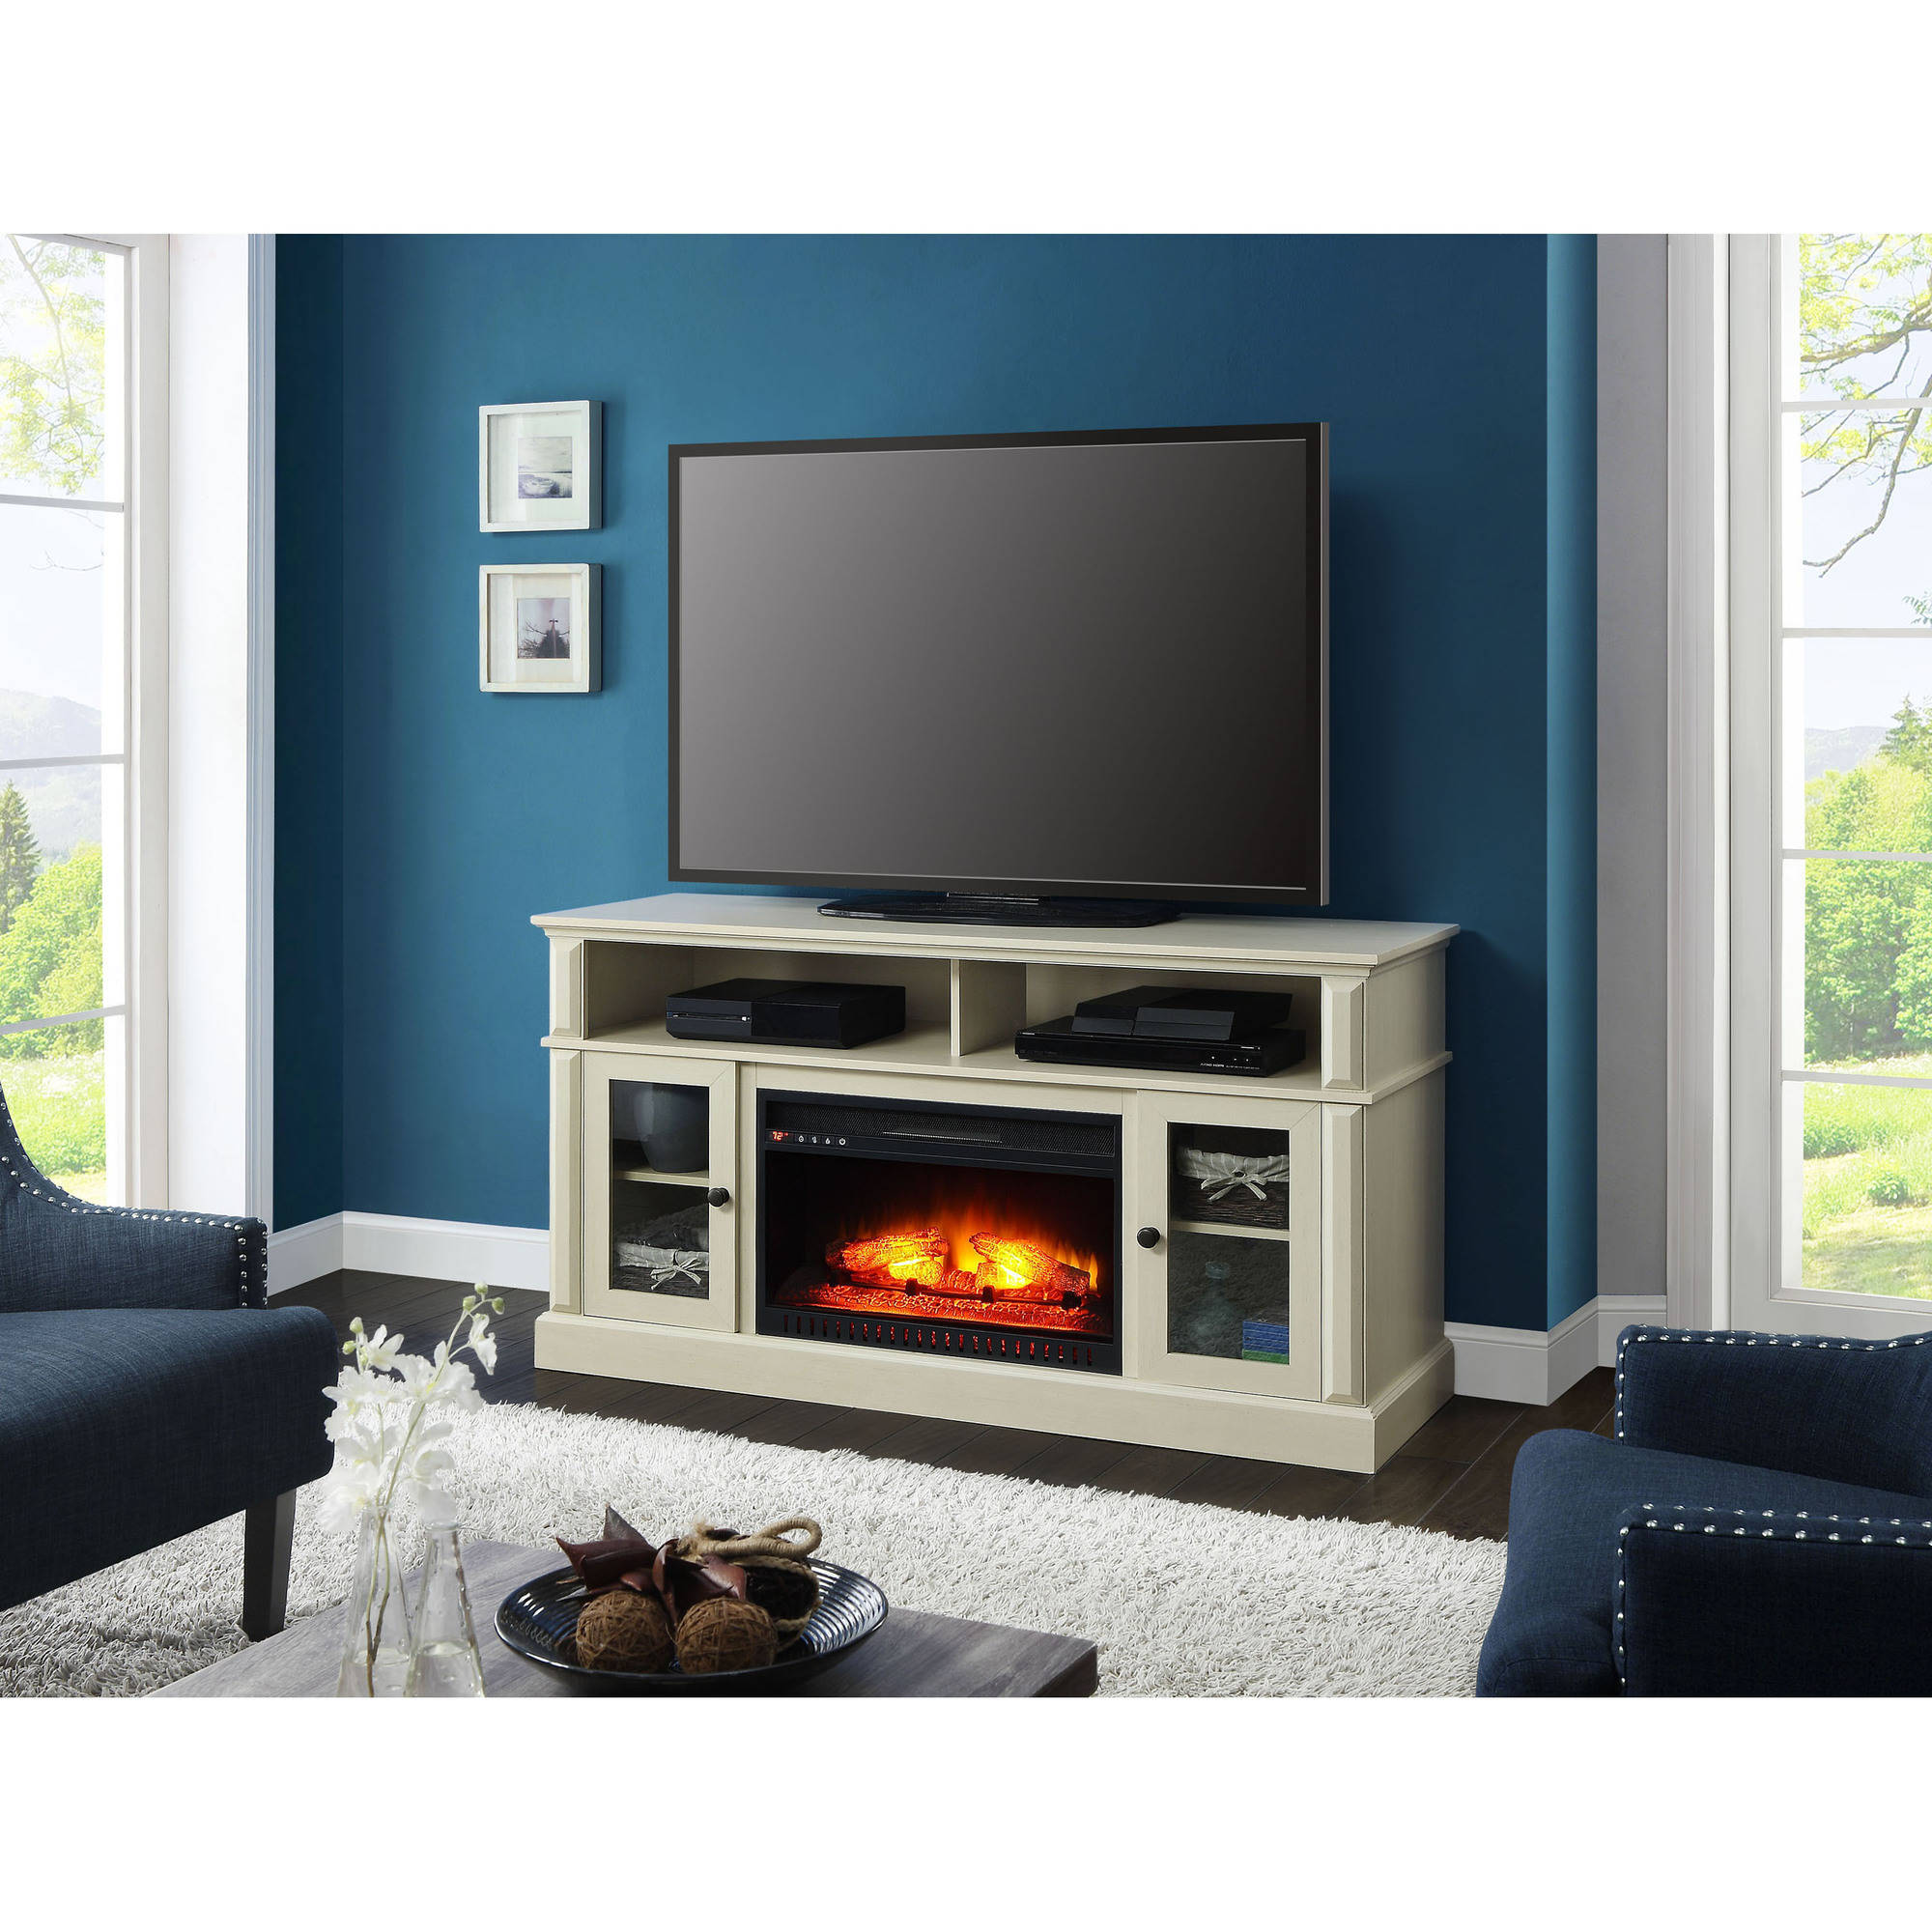 Flat Screen Tv Stand White Wood Entertainment Media Fireplace